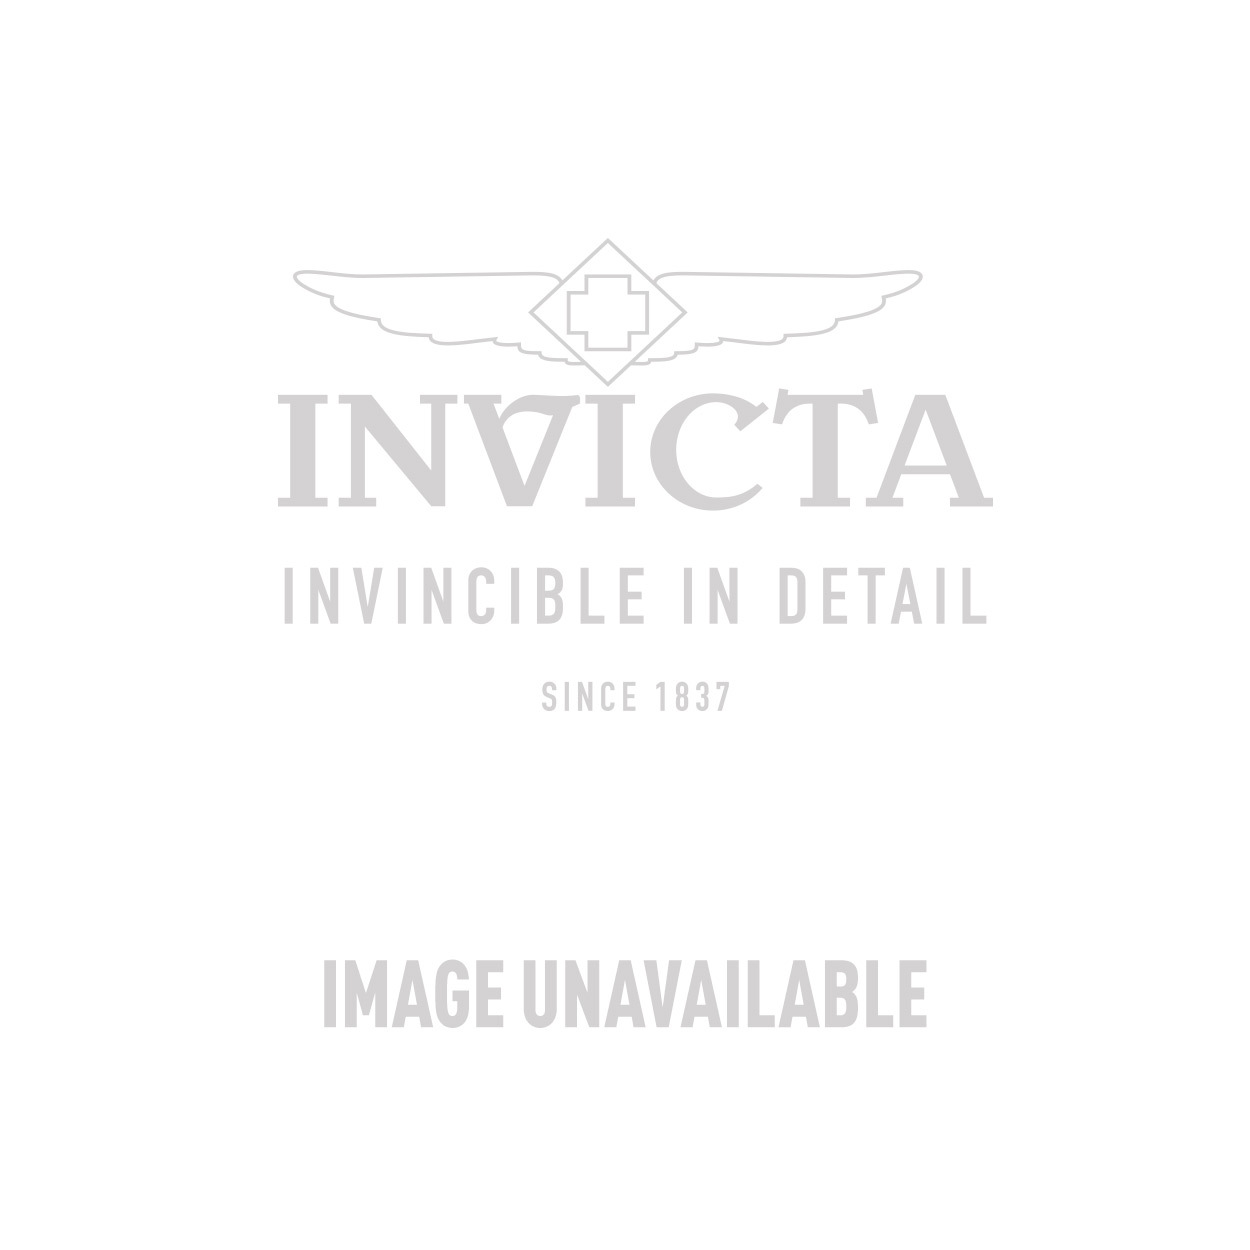 Invicta Sea Spider Swiss Movement Quartz Watch - Gold case with Gold, Brown tone Stainless Steel, Polyurethane band - Model 15242